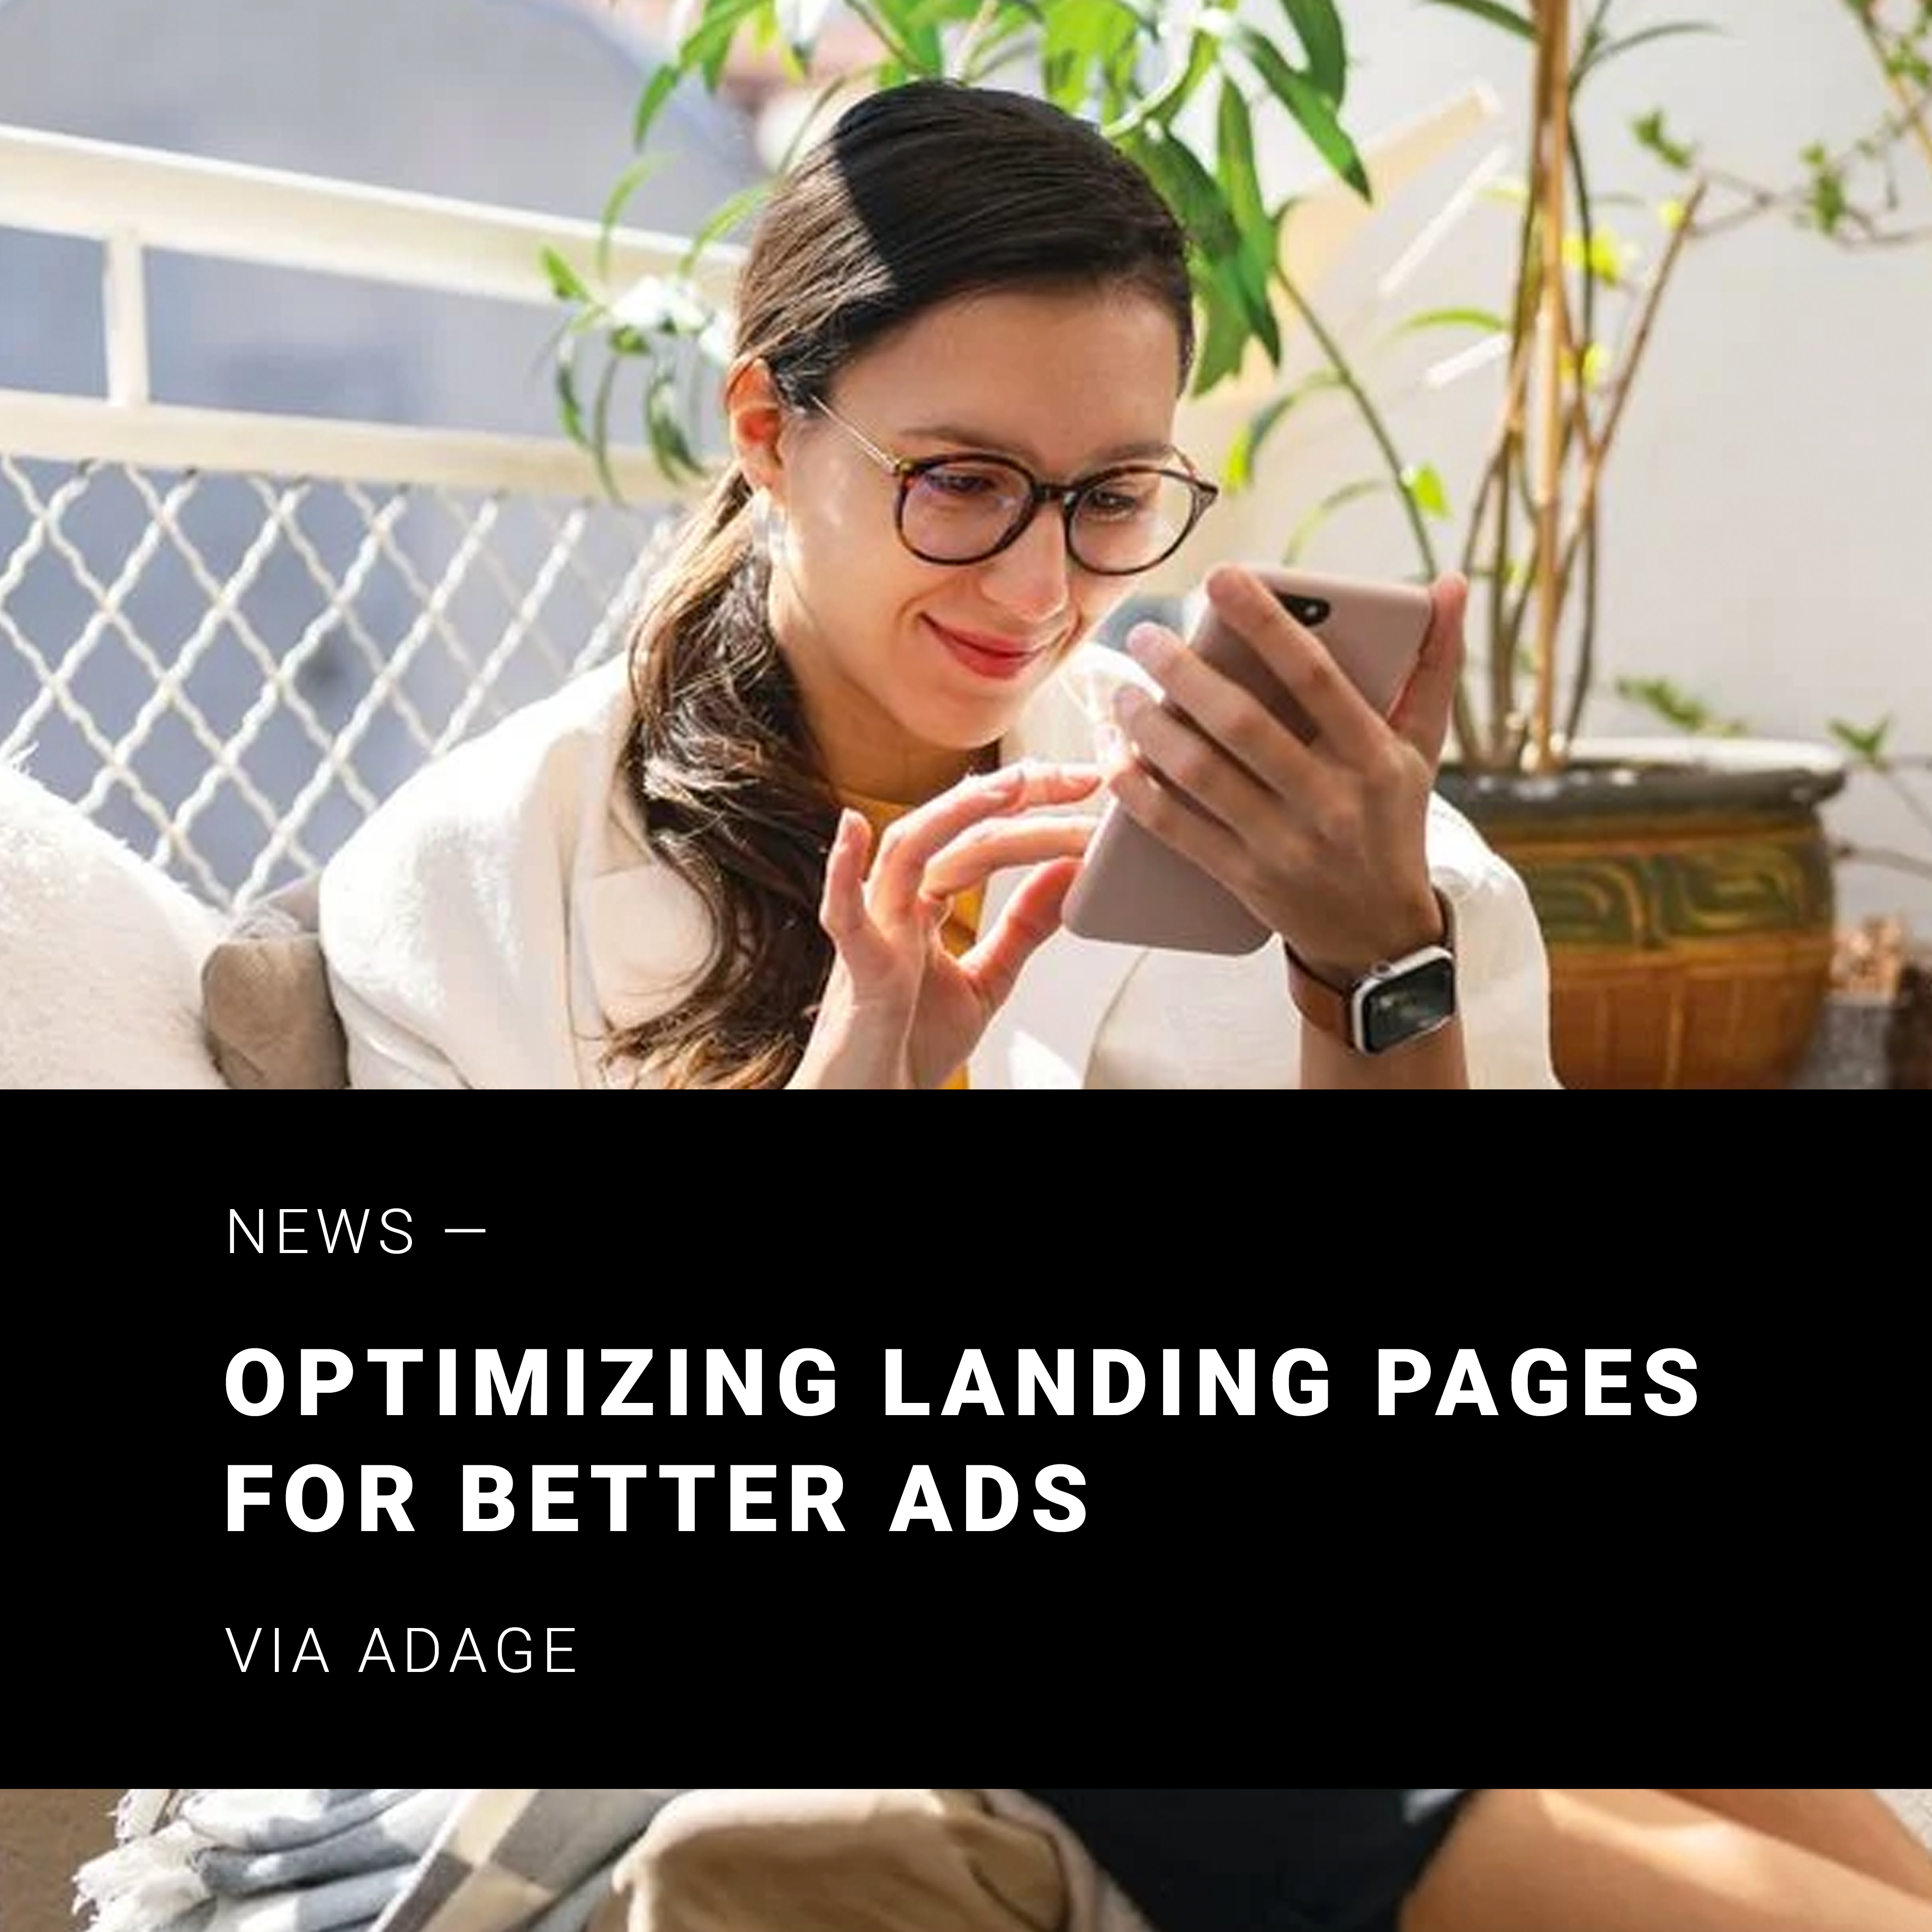 POV-COVERS-adage-landing-pages-01